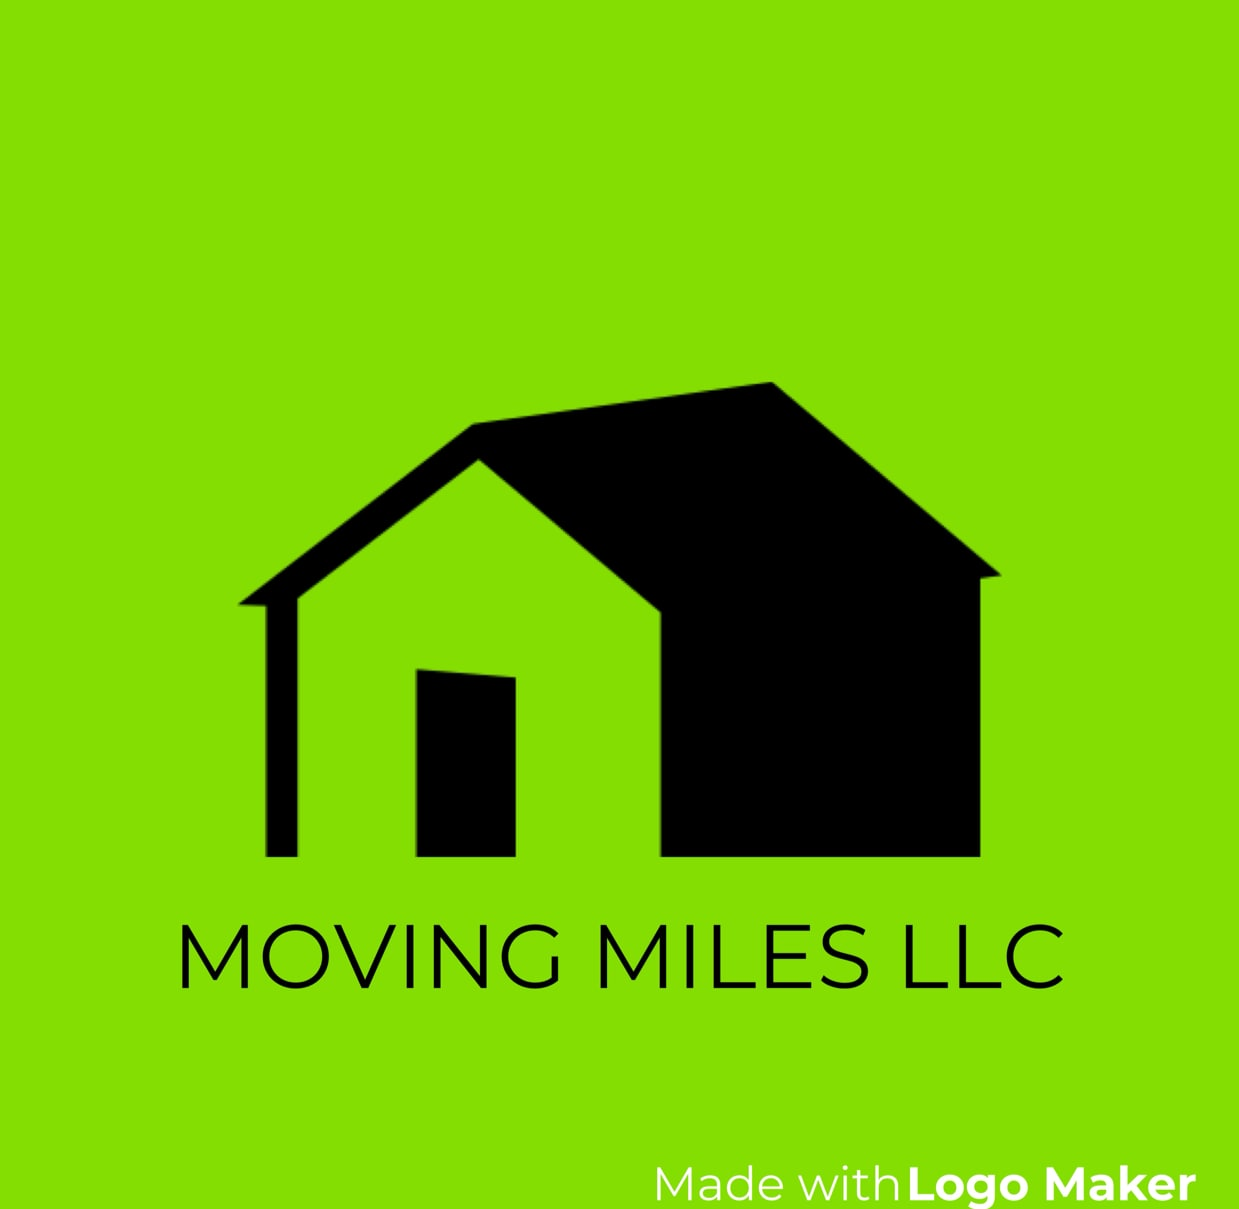 Moving Miles LLC